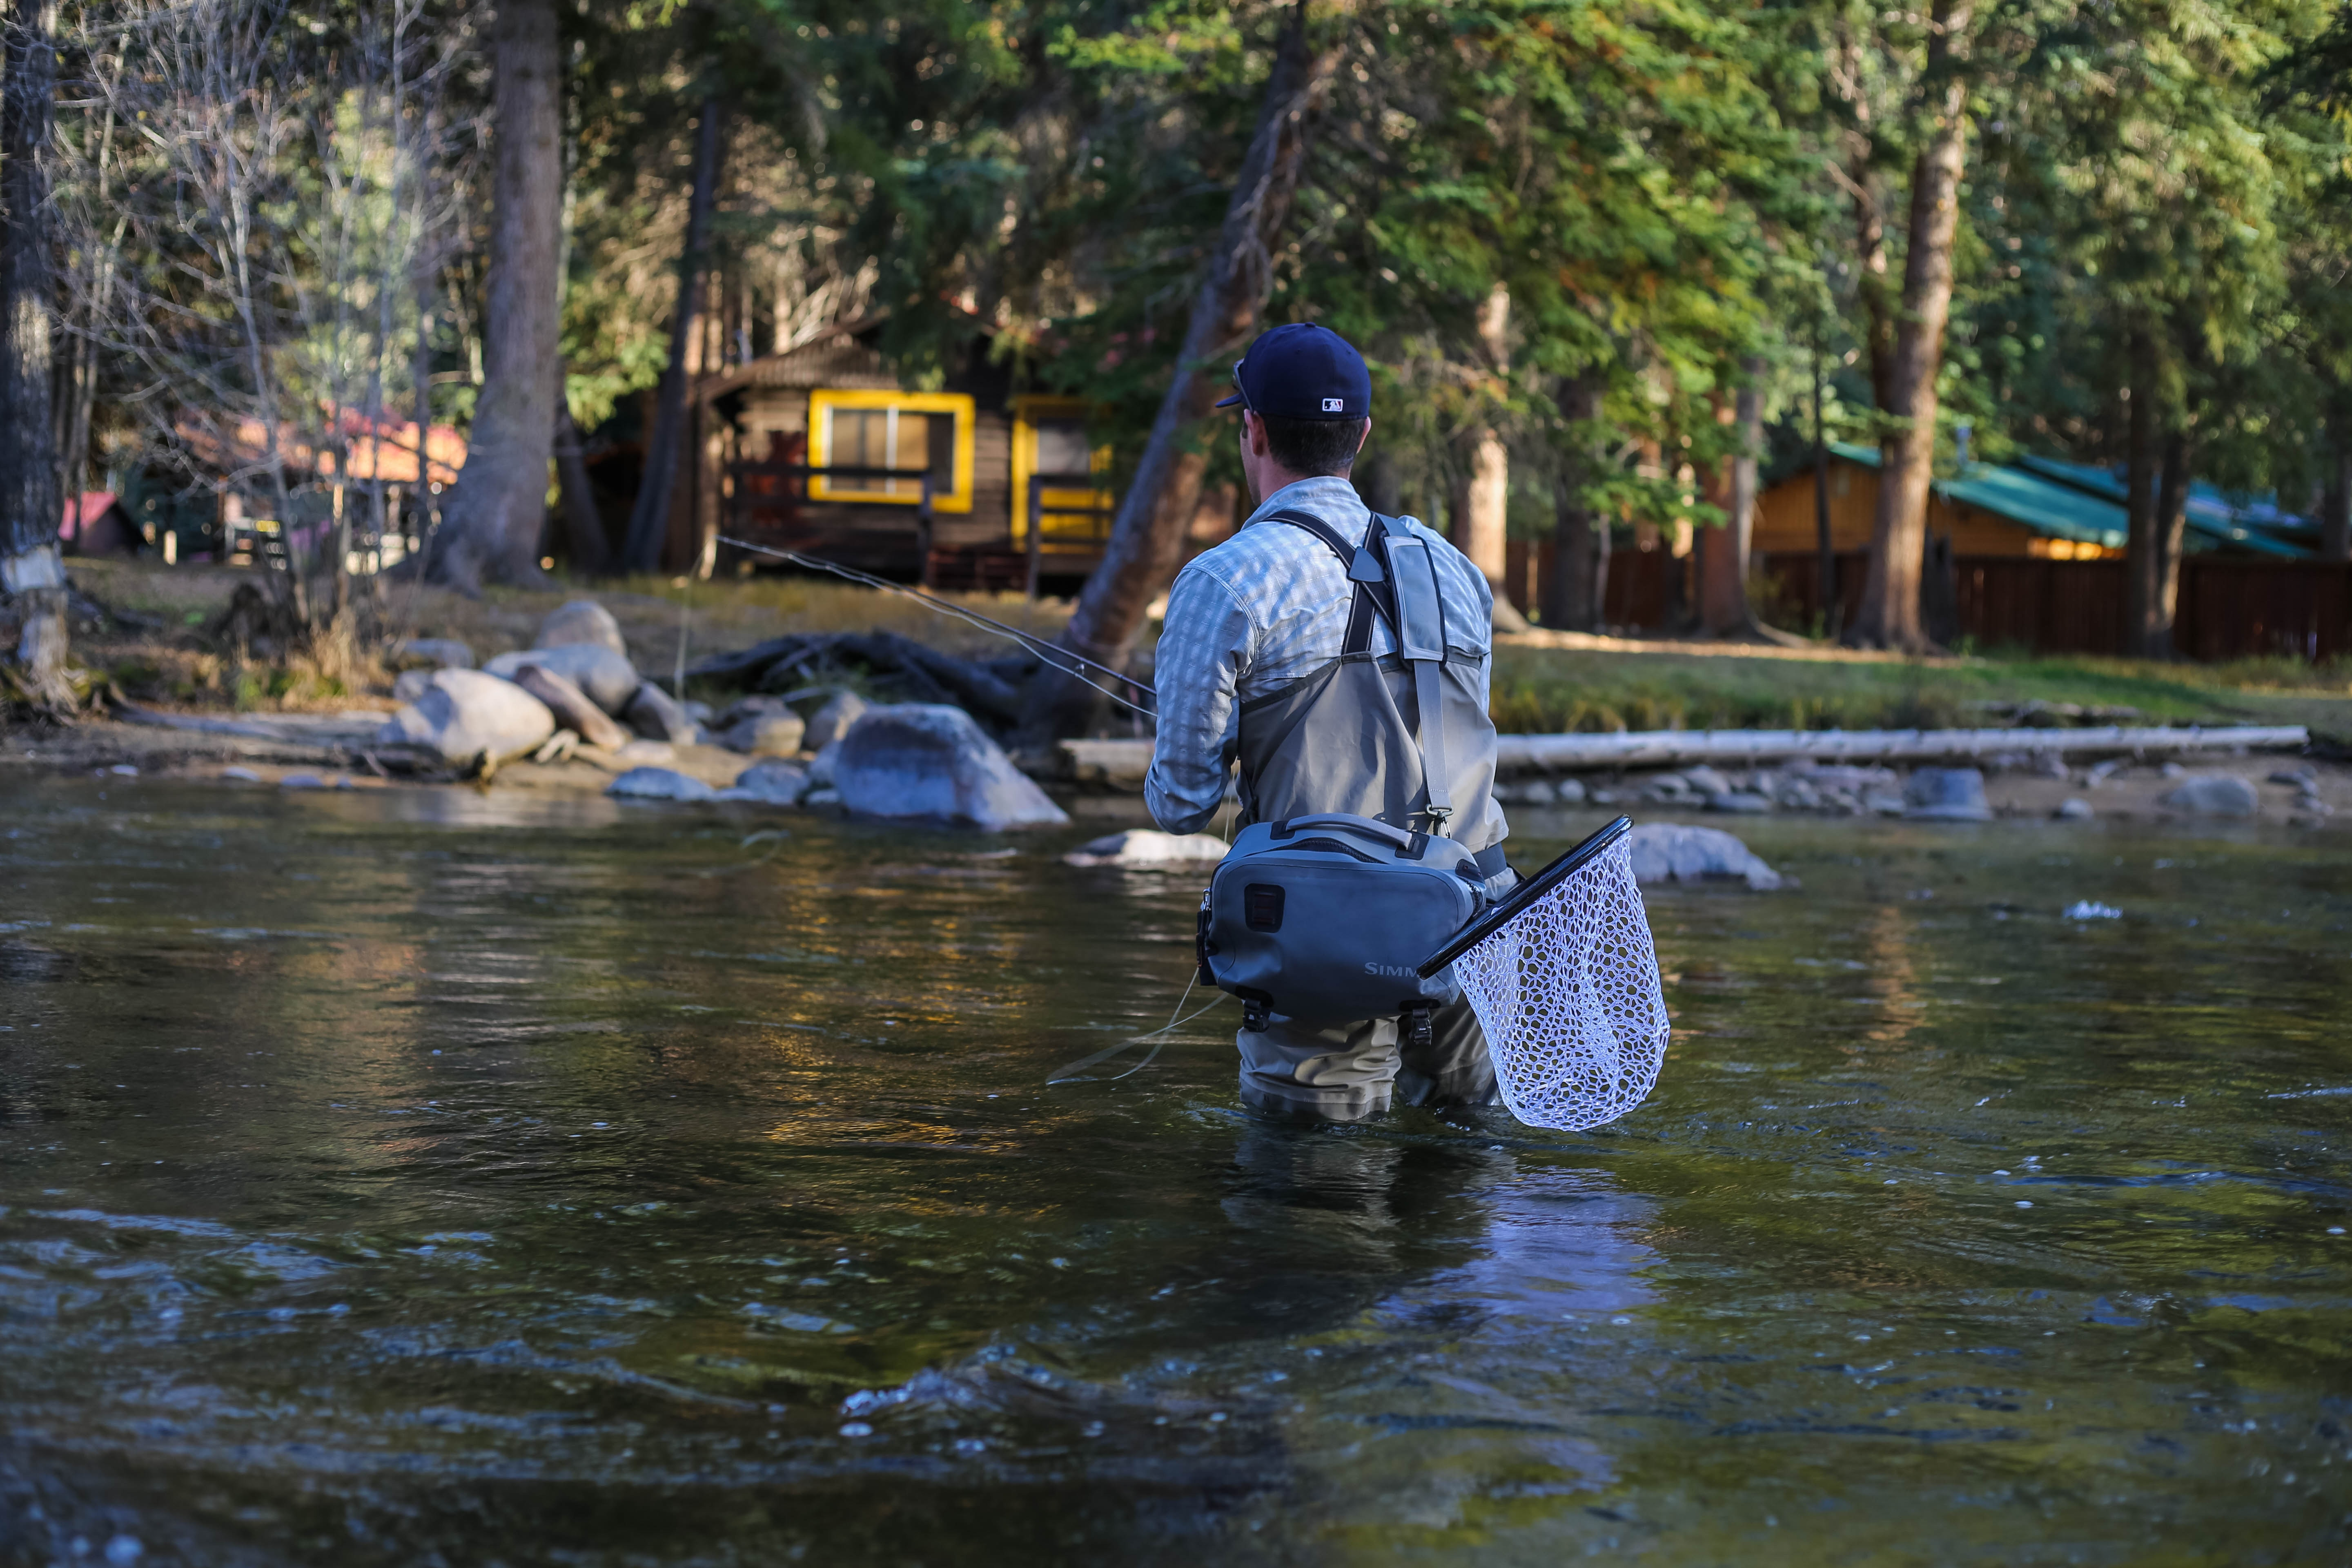 Cast and blast - fishing and shooting in Aspen Colorado